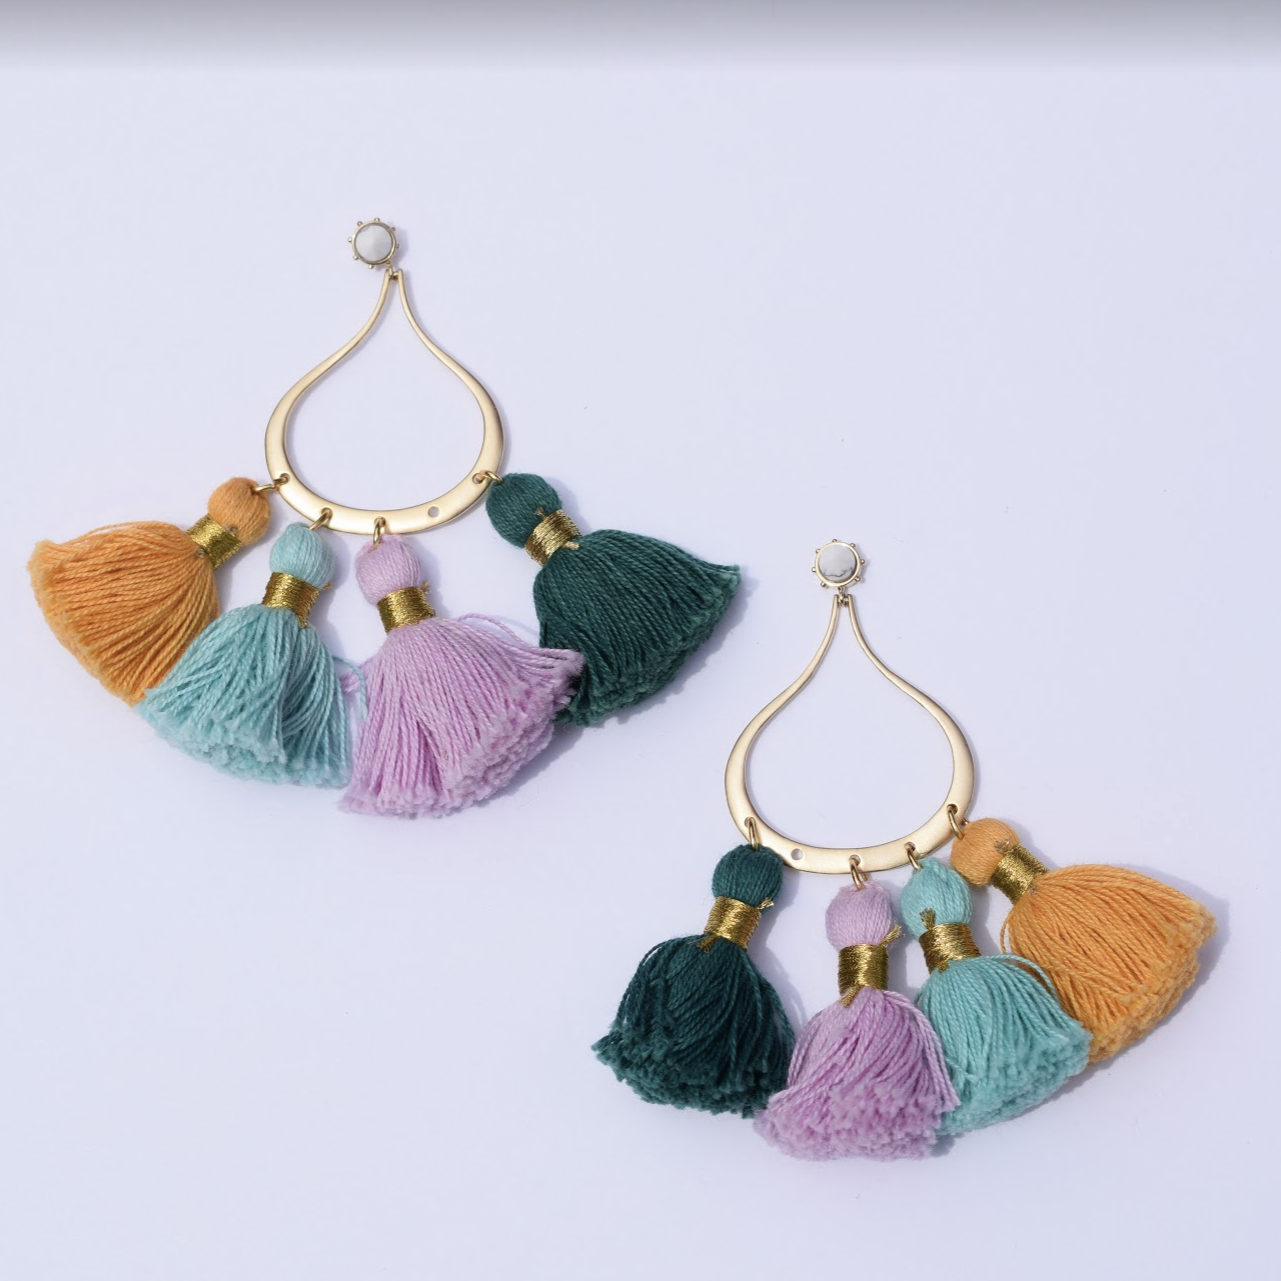 LA Chic Tassel Earrings - Oriana Lamarca LLC